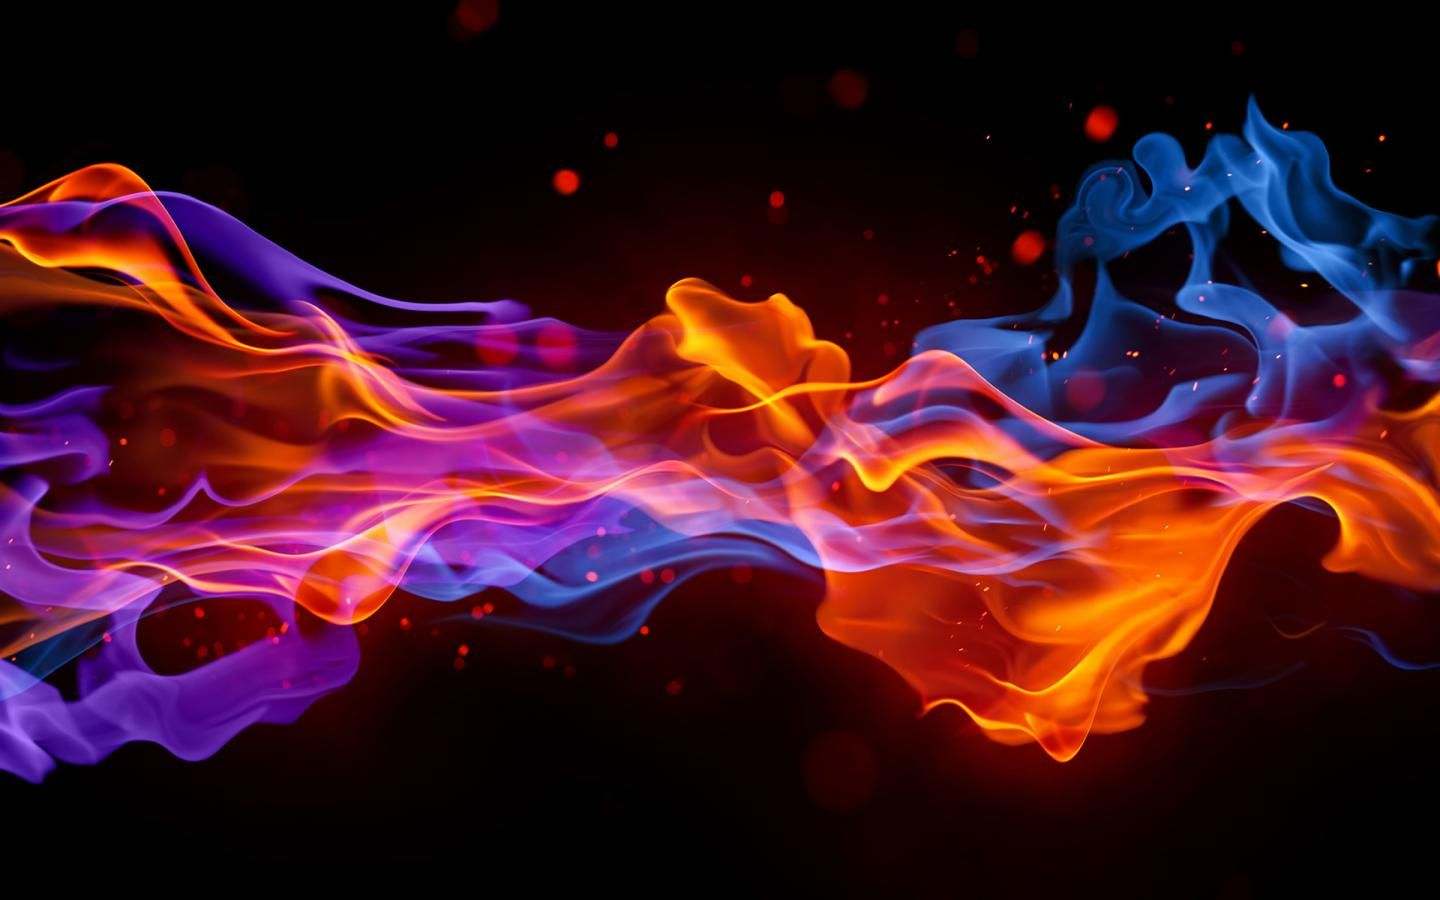 Fire and ice fractal abstract wallpaper hd wallpapers - Fire Wallpaper Hd Google Search